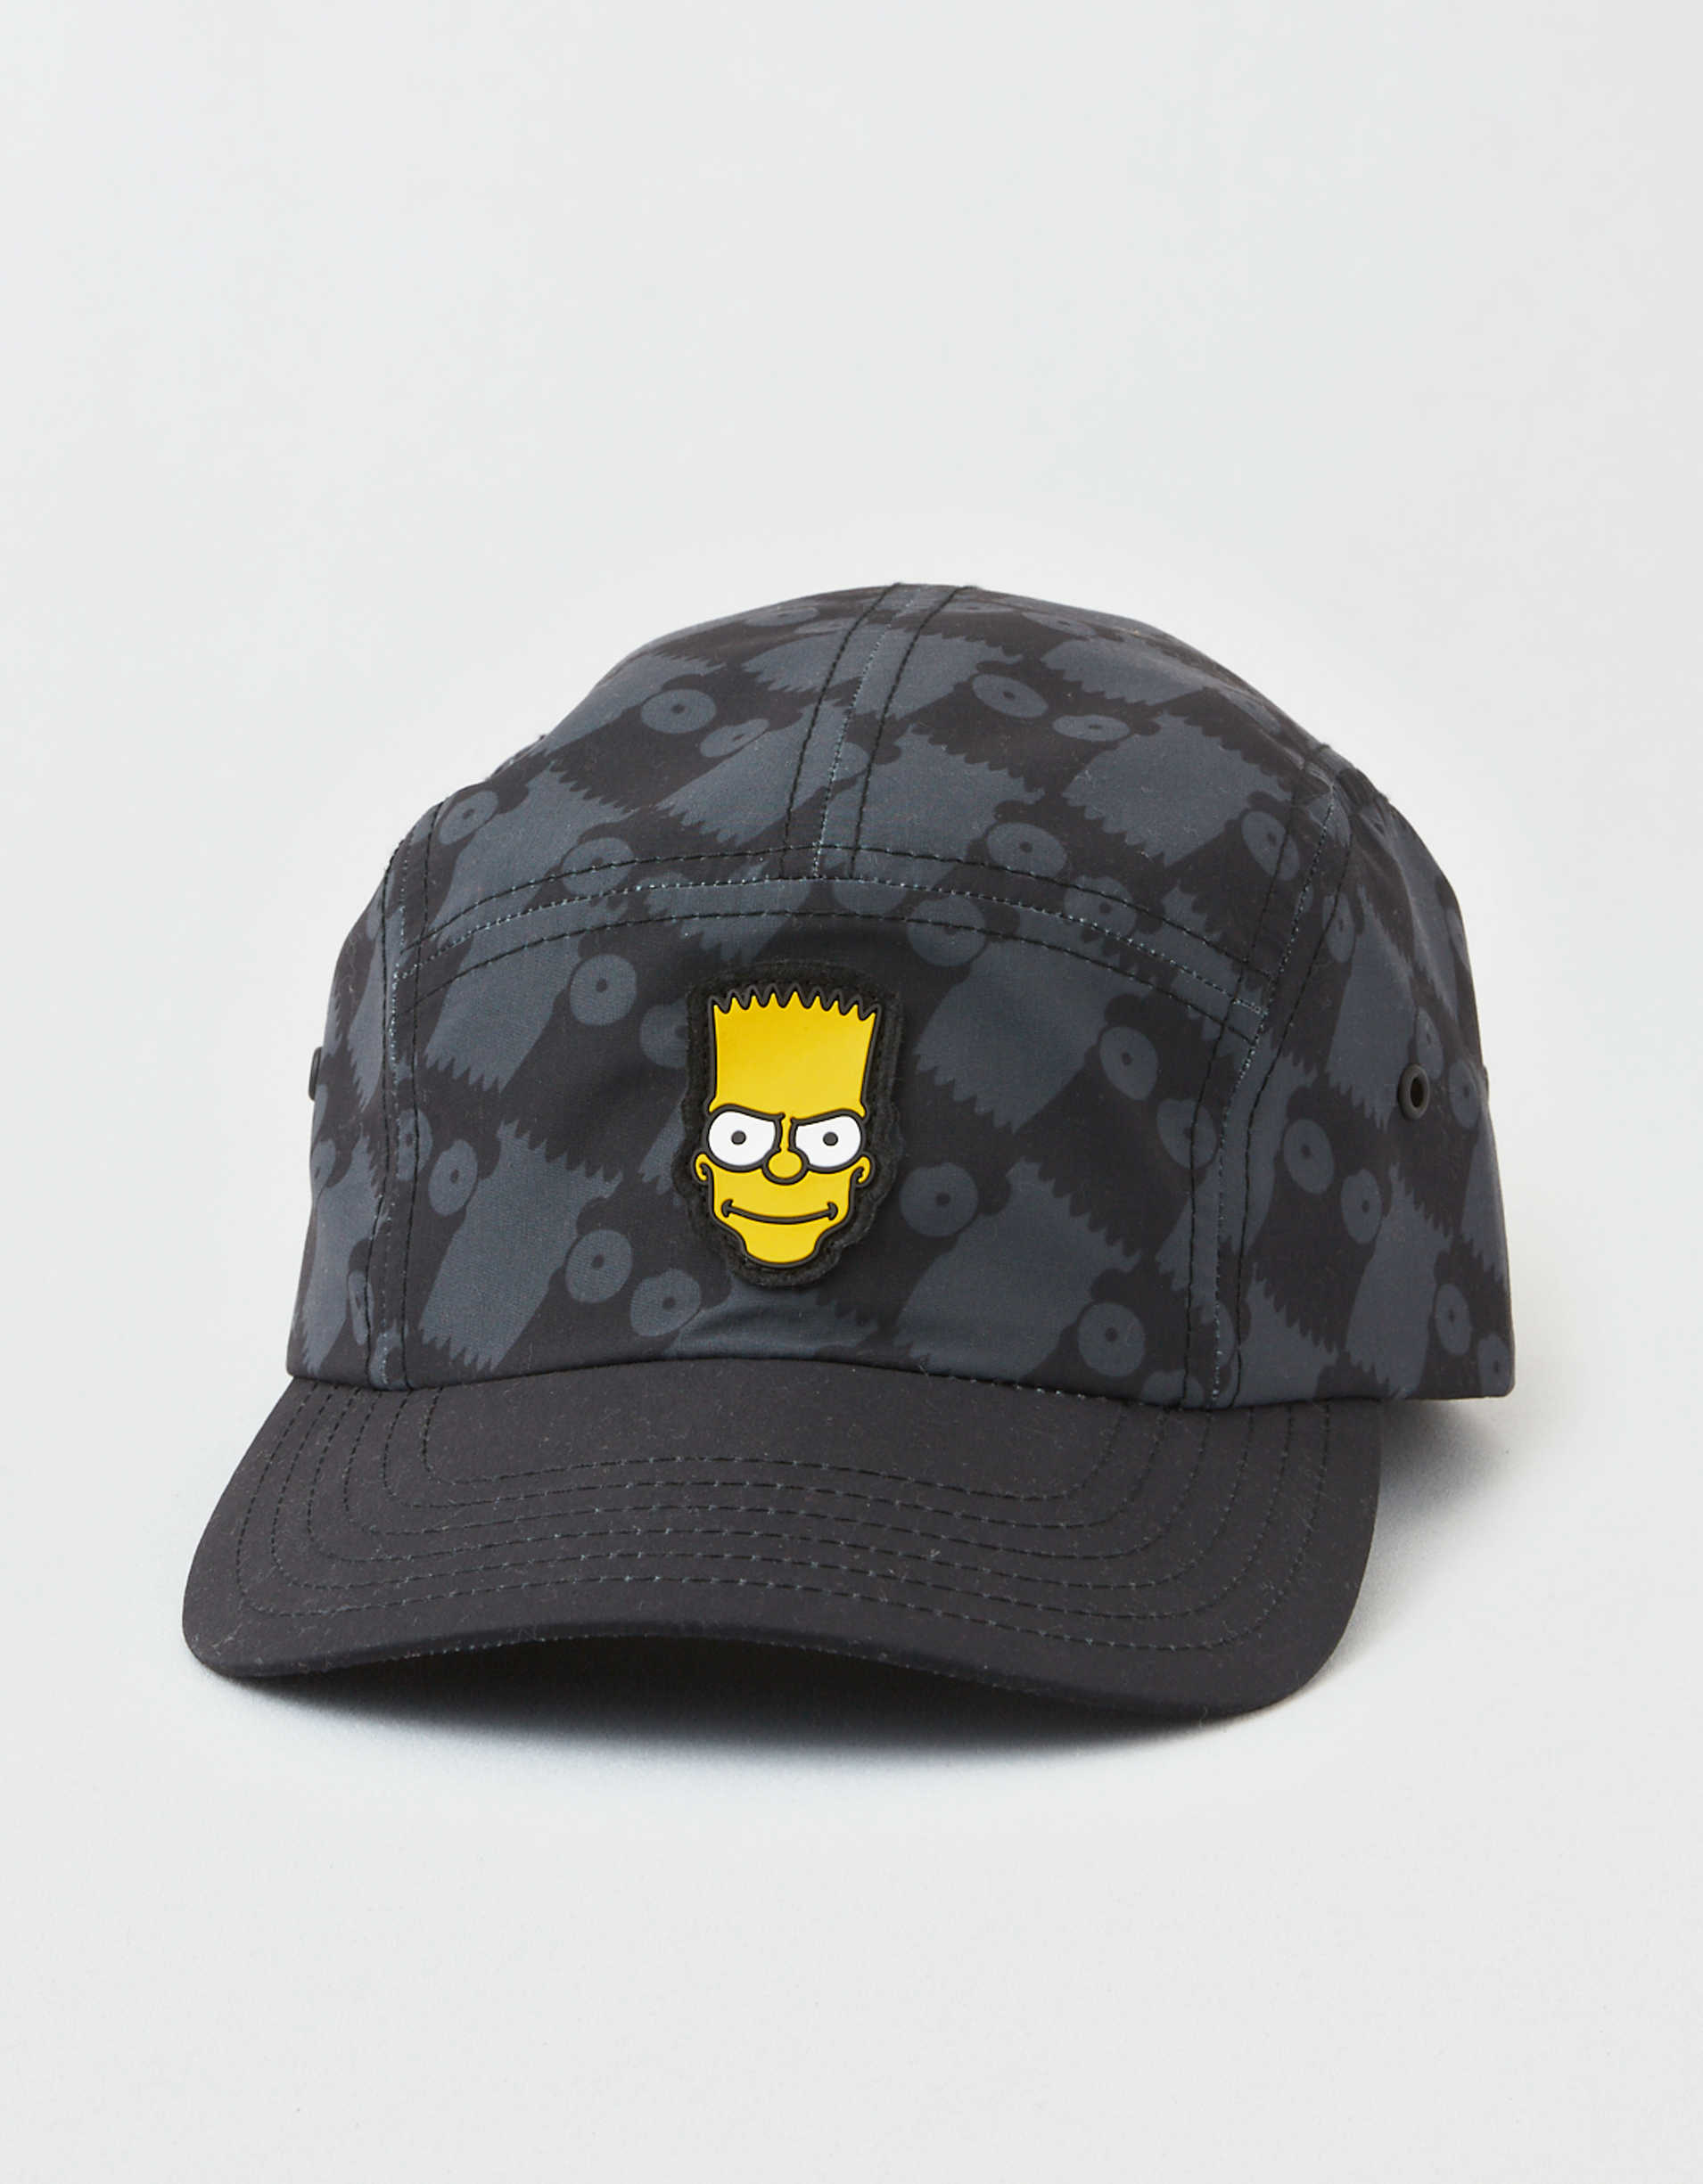 AE X Simpsons Bart Simpson 5-Panel Hat